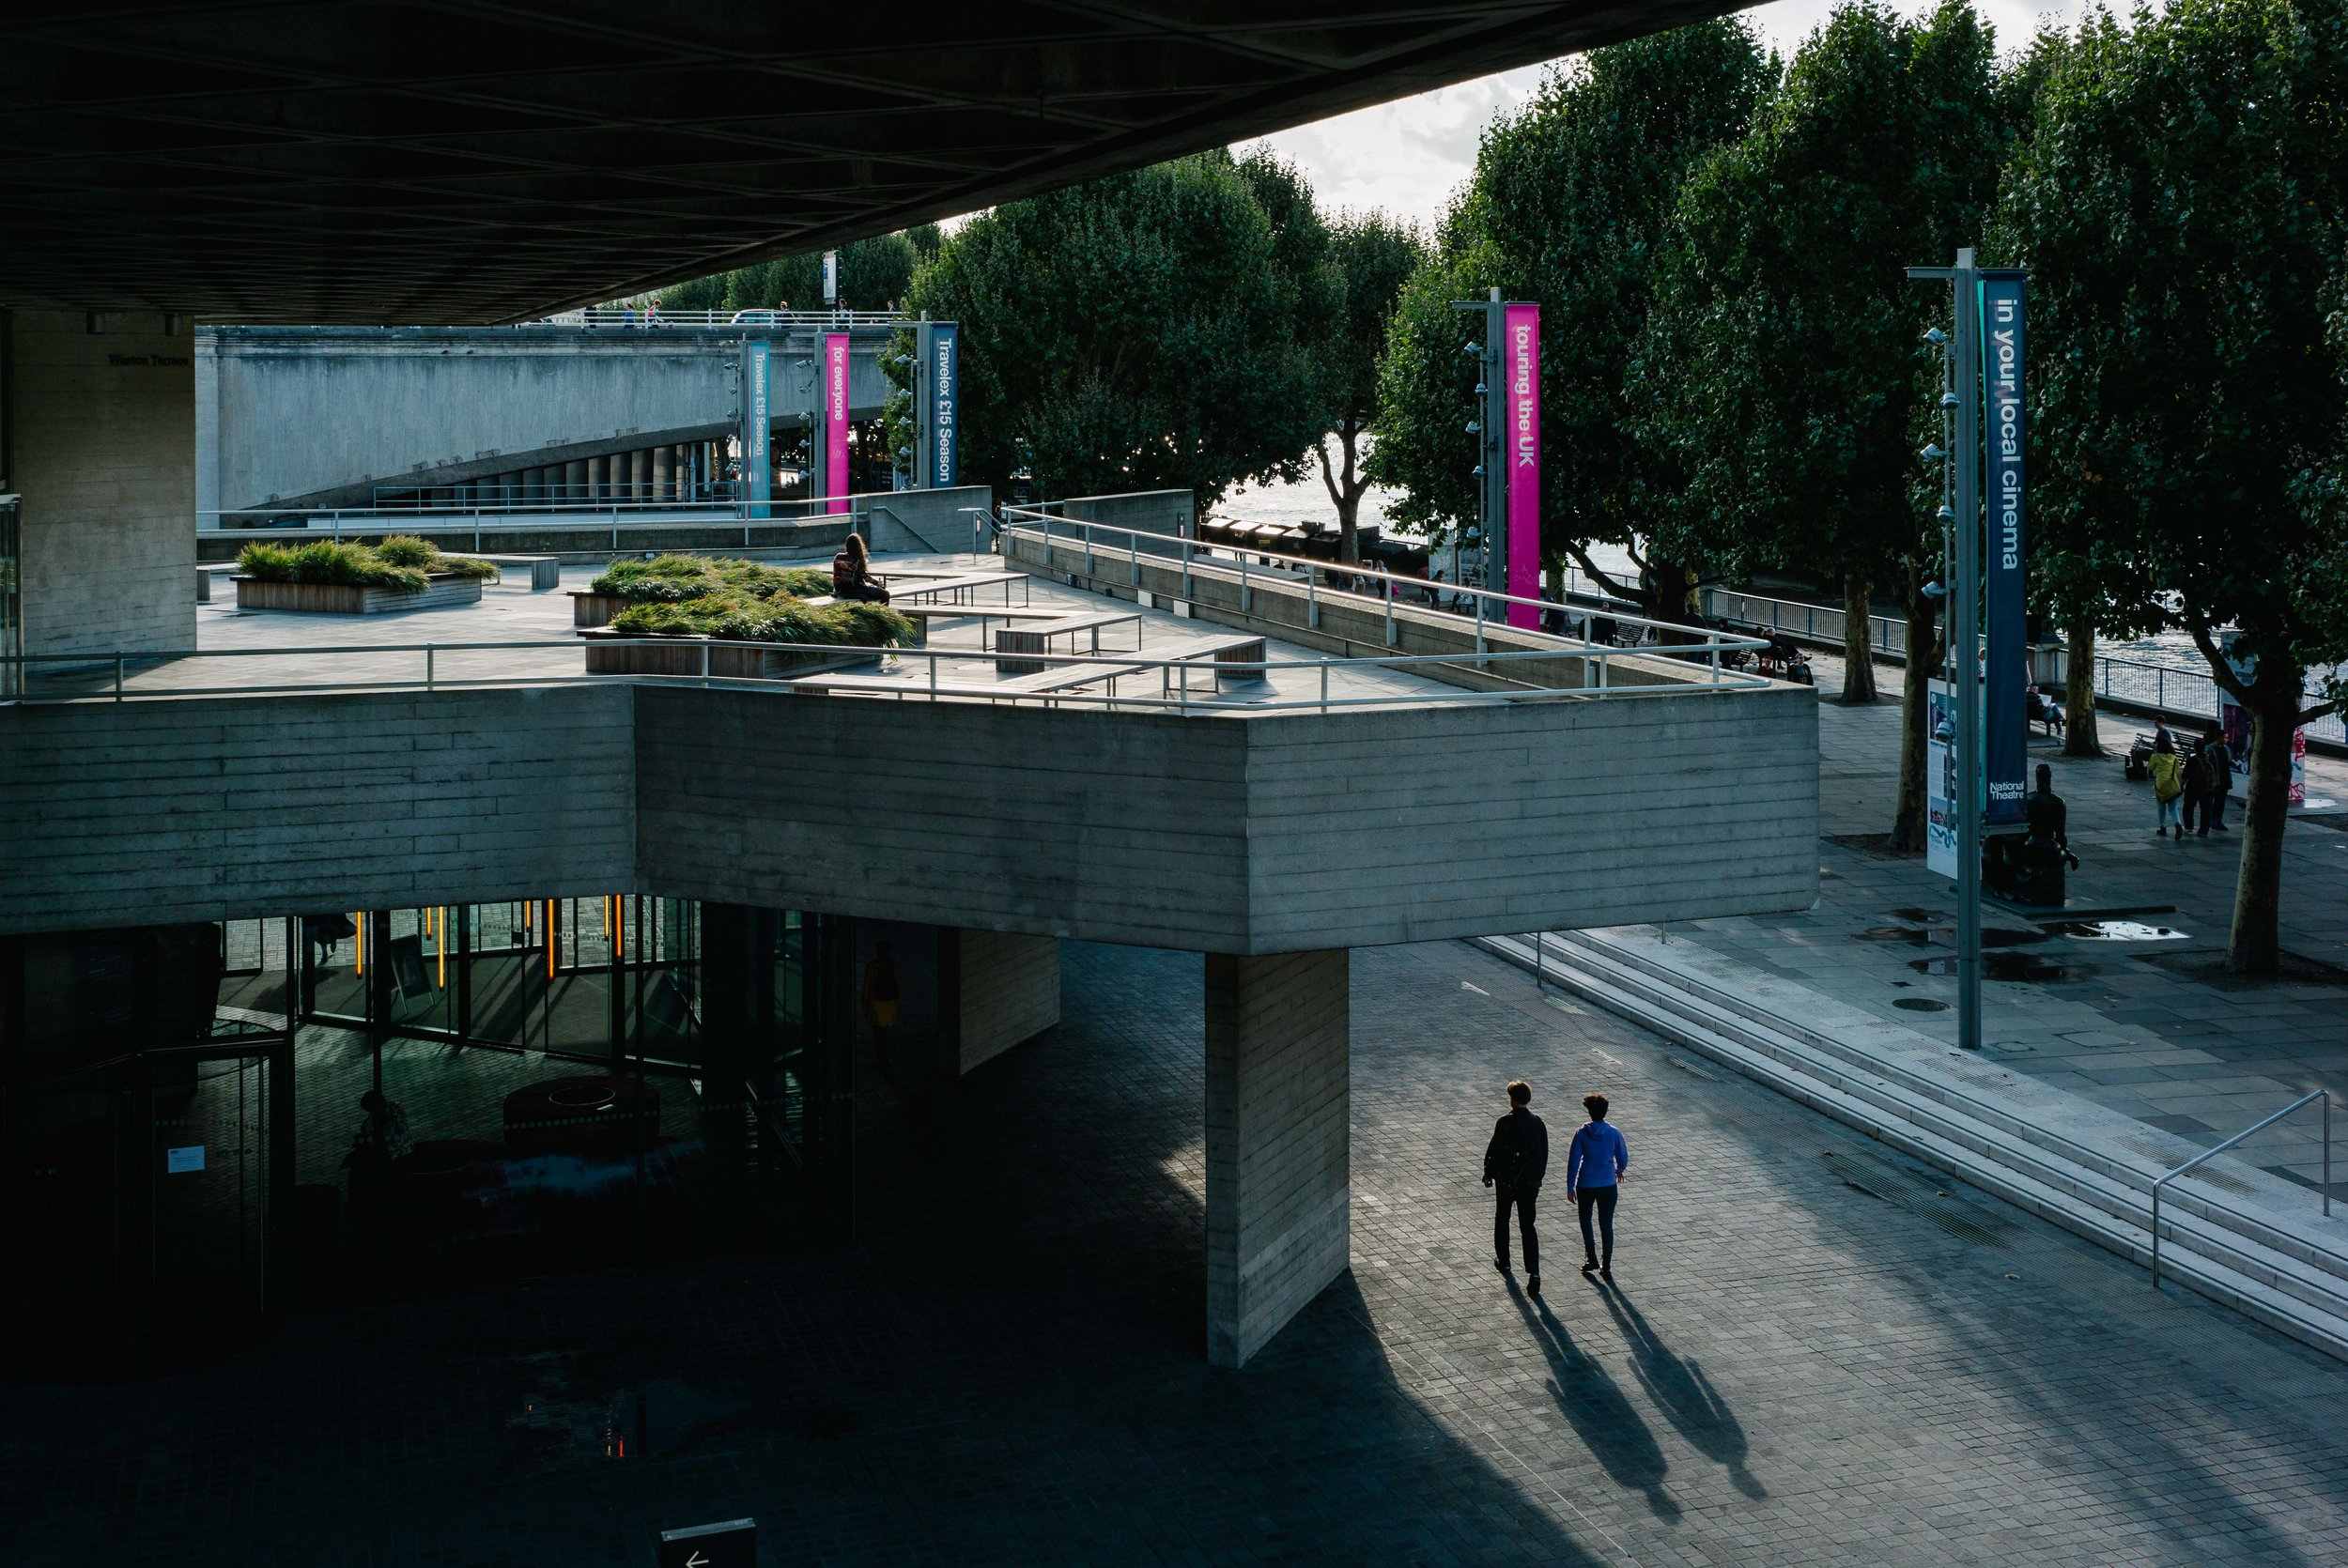 Southbank Centre - Clifford Darby 2017